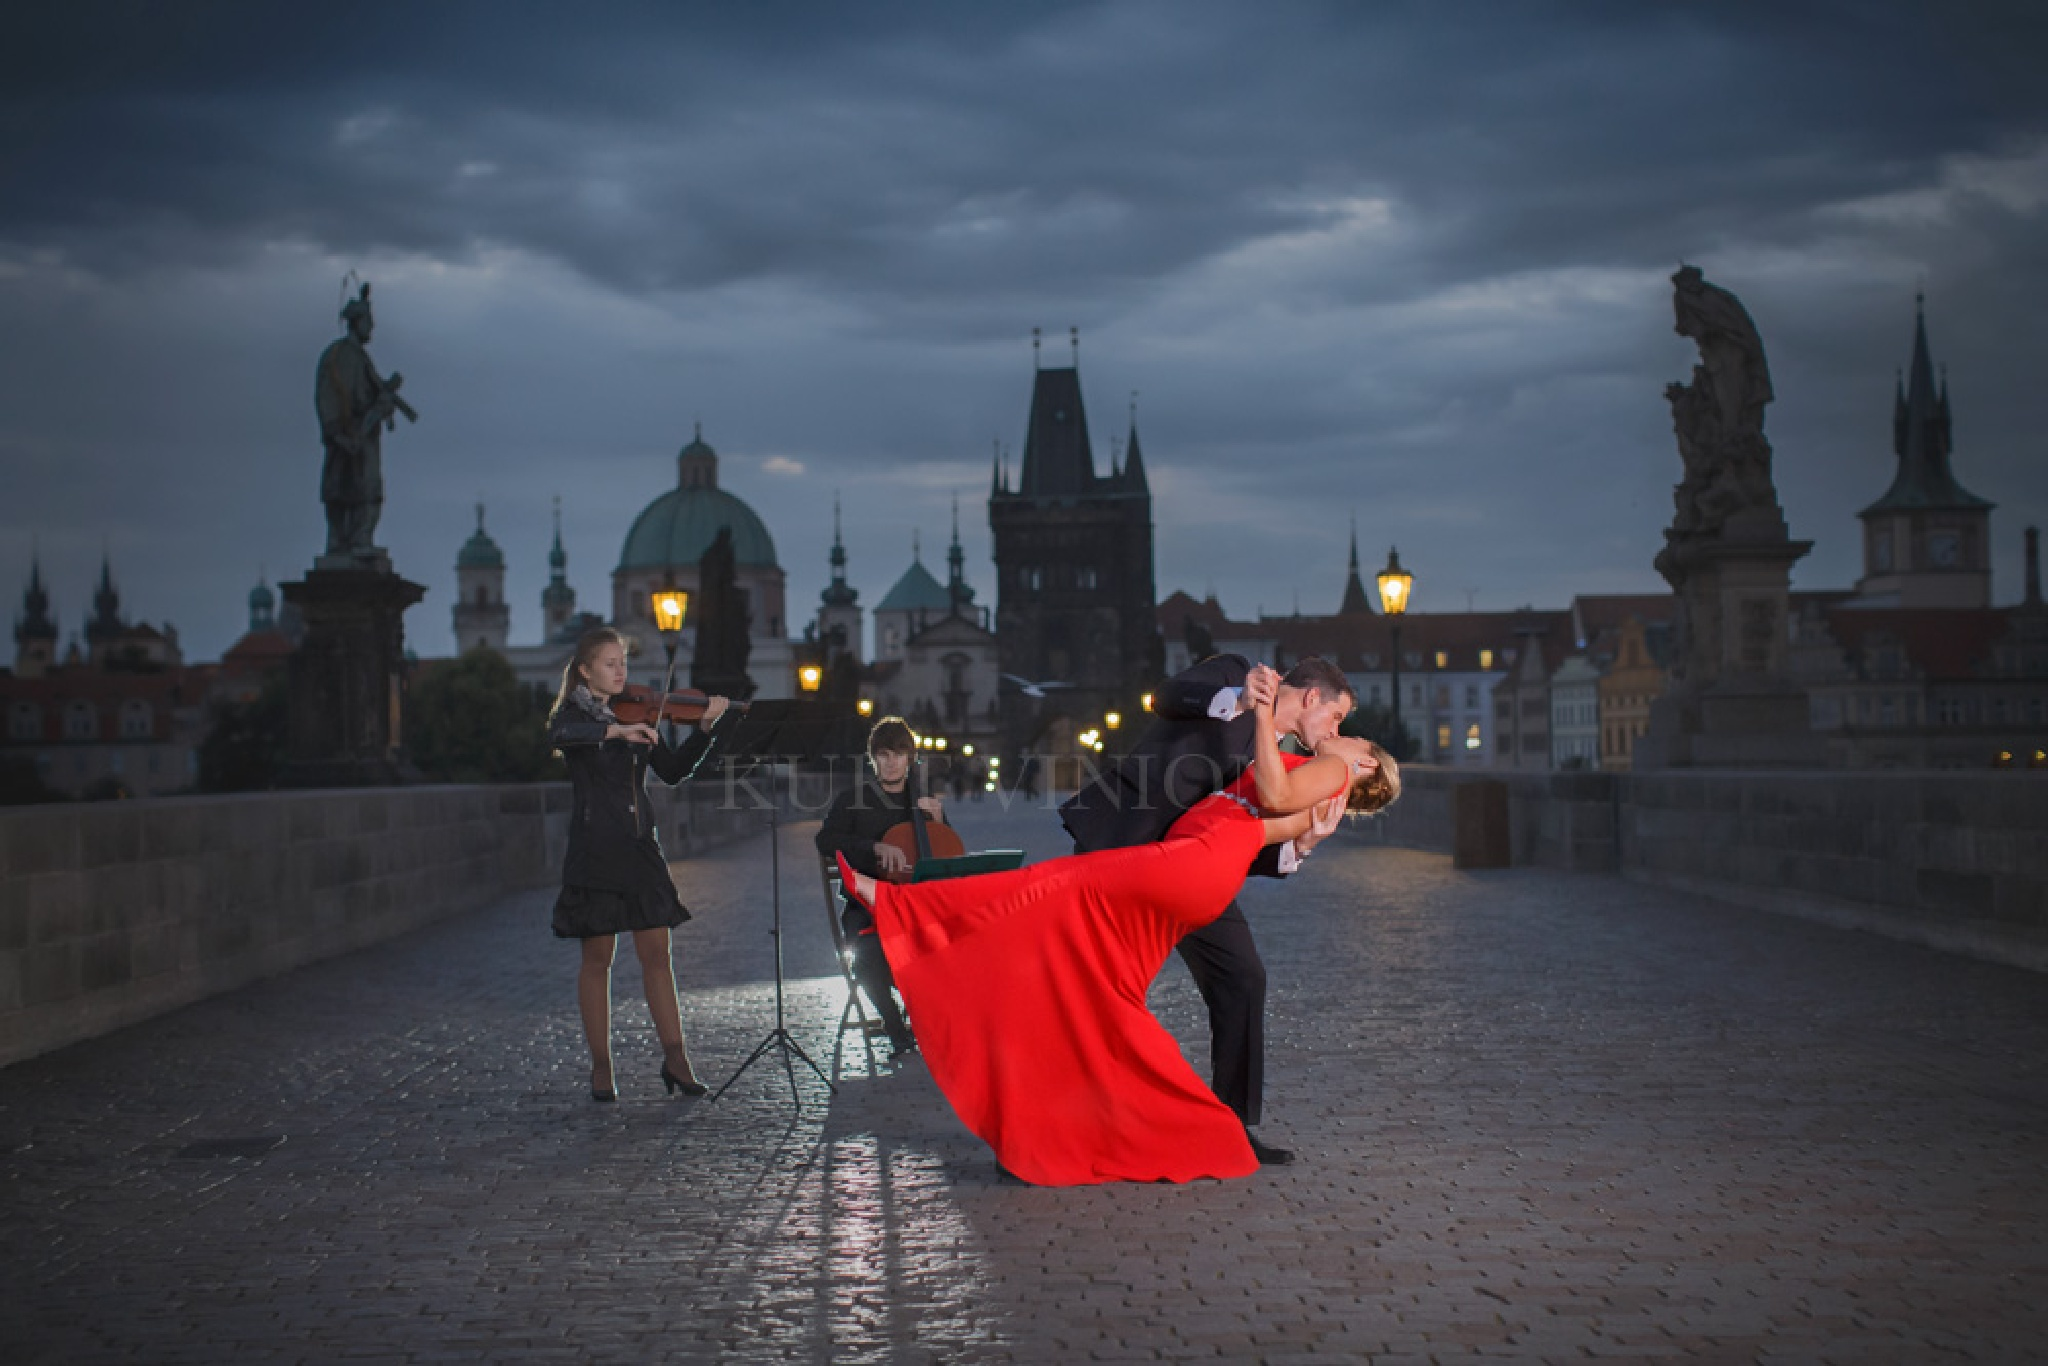 The dance atop the Charles Bridge by vinion